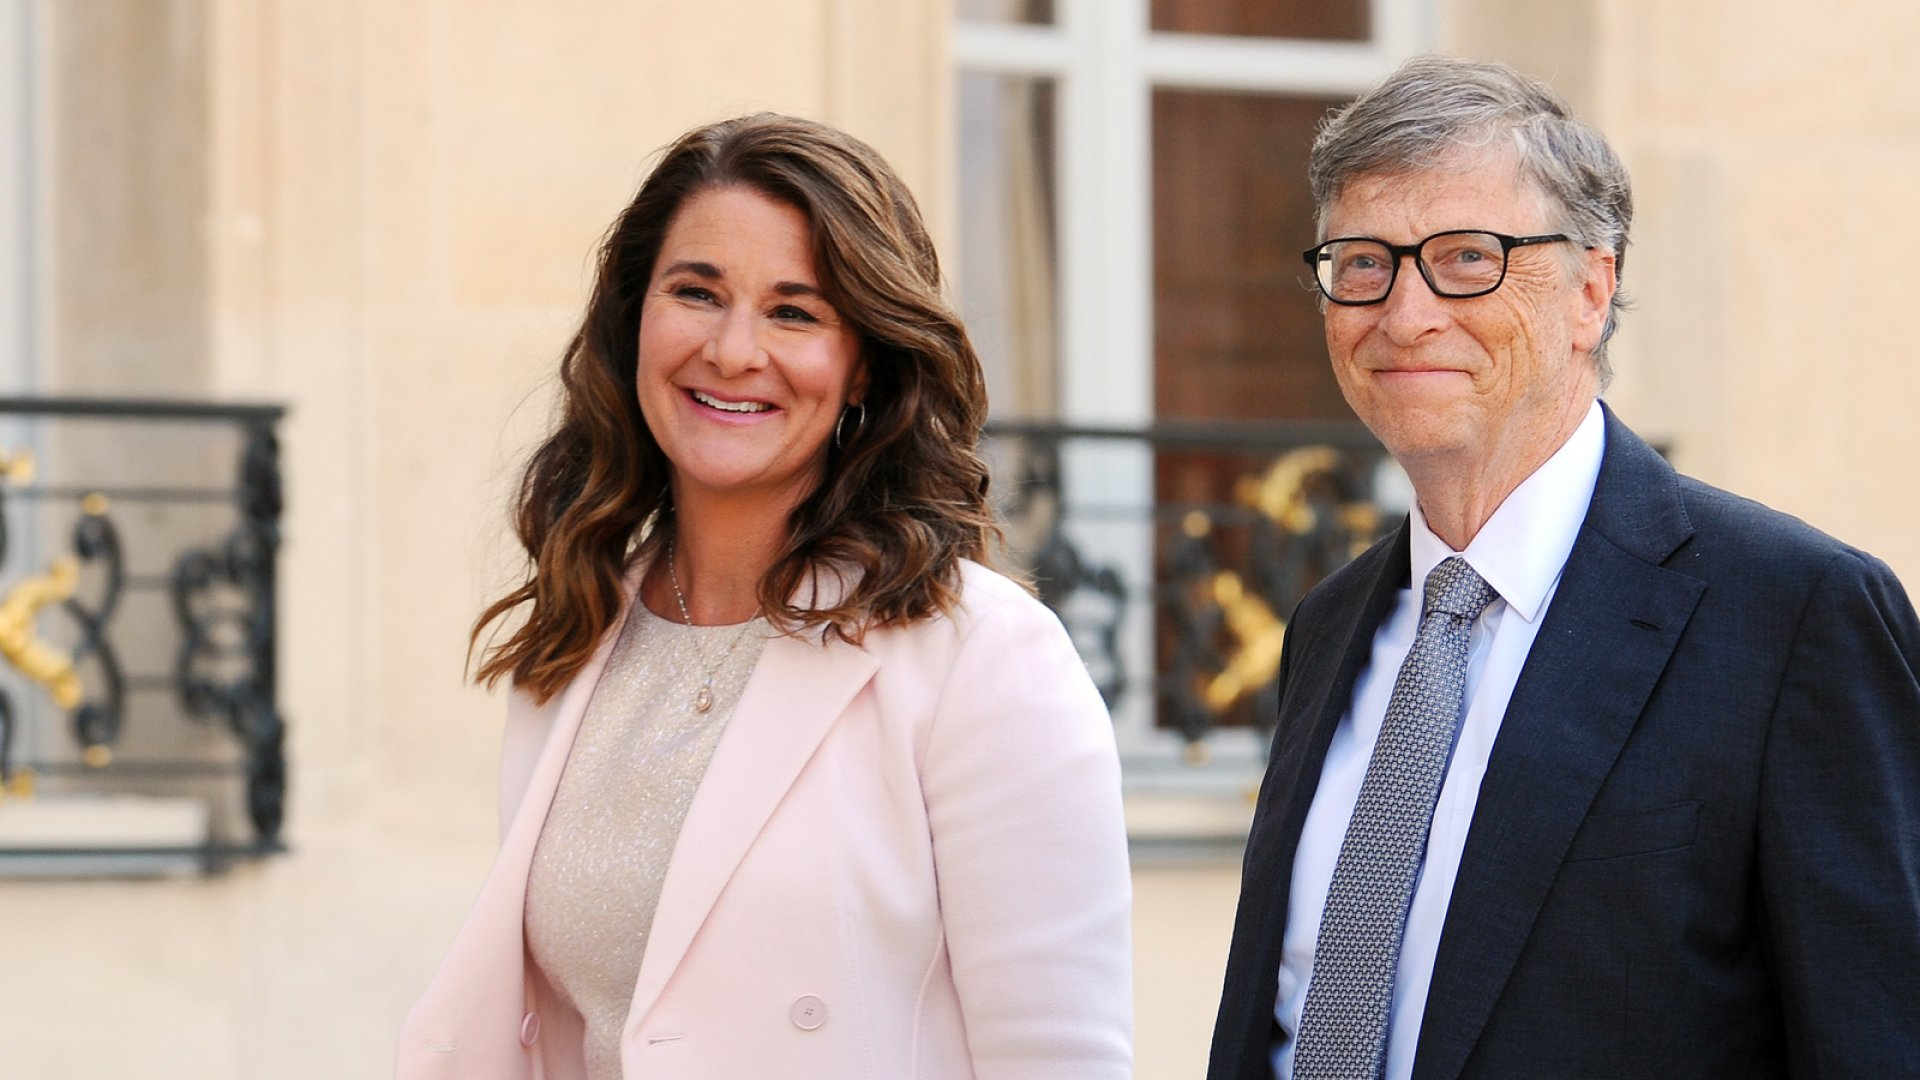 Bill and Melinda Gates announce they are divorcing | Nairametrics